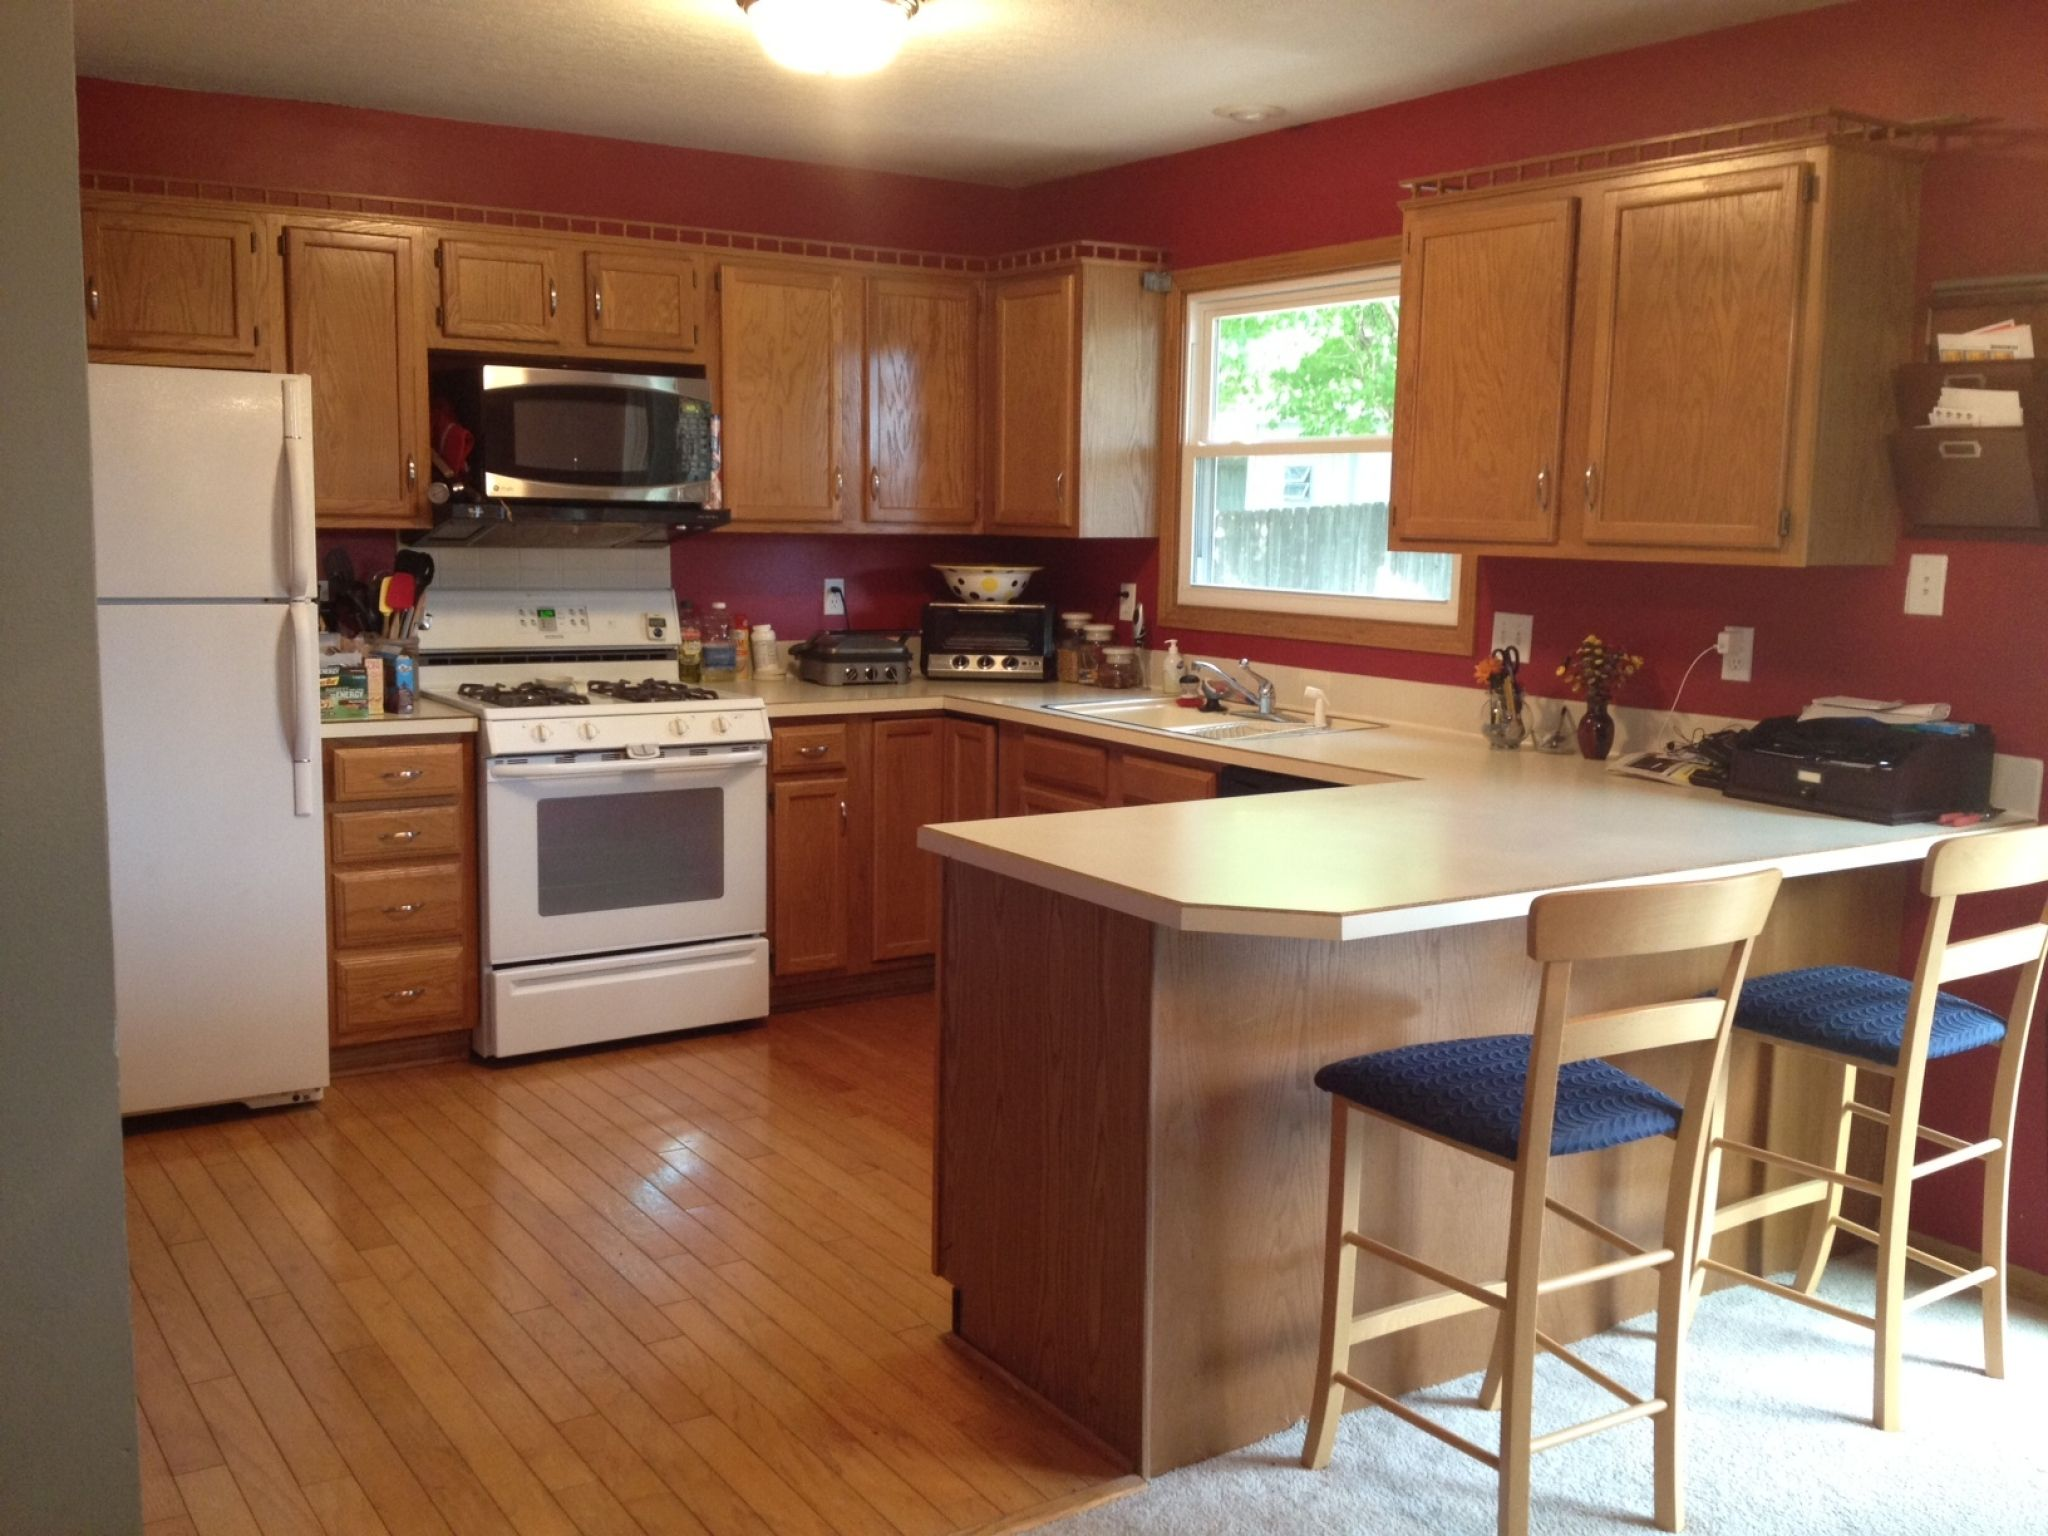 Kitchen Wall Colors With Honey Oak Cabinets  Ideas For Kitchen Captivating Kitchen Designs With Oak Cabinets Design Ideas